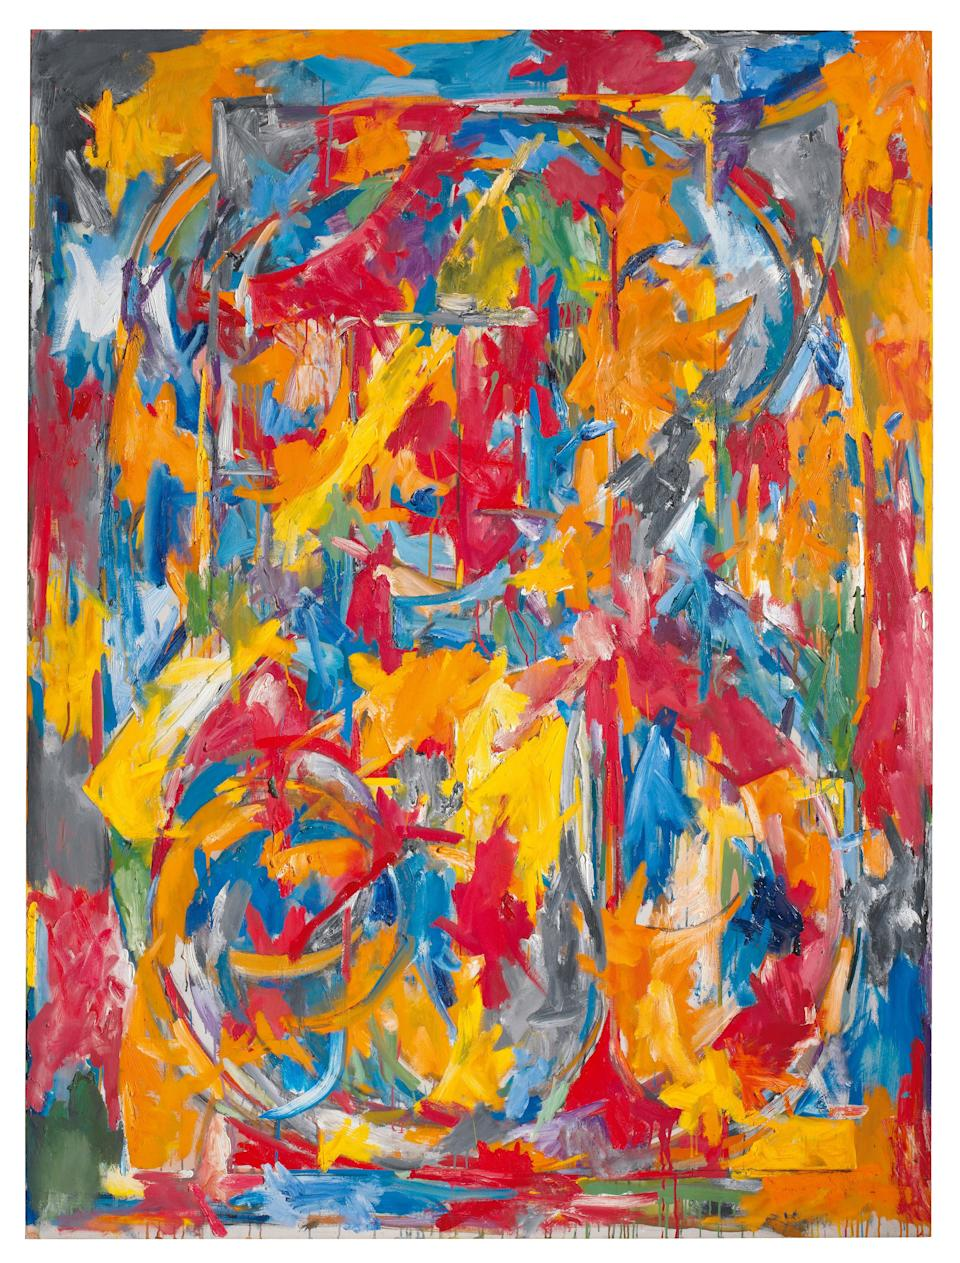 Jasper Johns, 0 through 9, 1960. Oil on canvas, 72 1/2 × 54 in. (184.2 × 137.2 cm). Private collection.